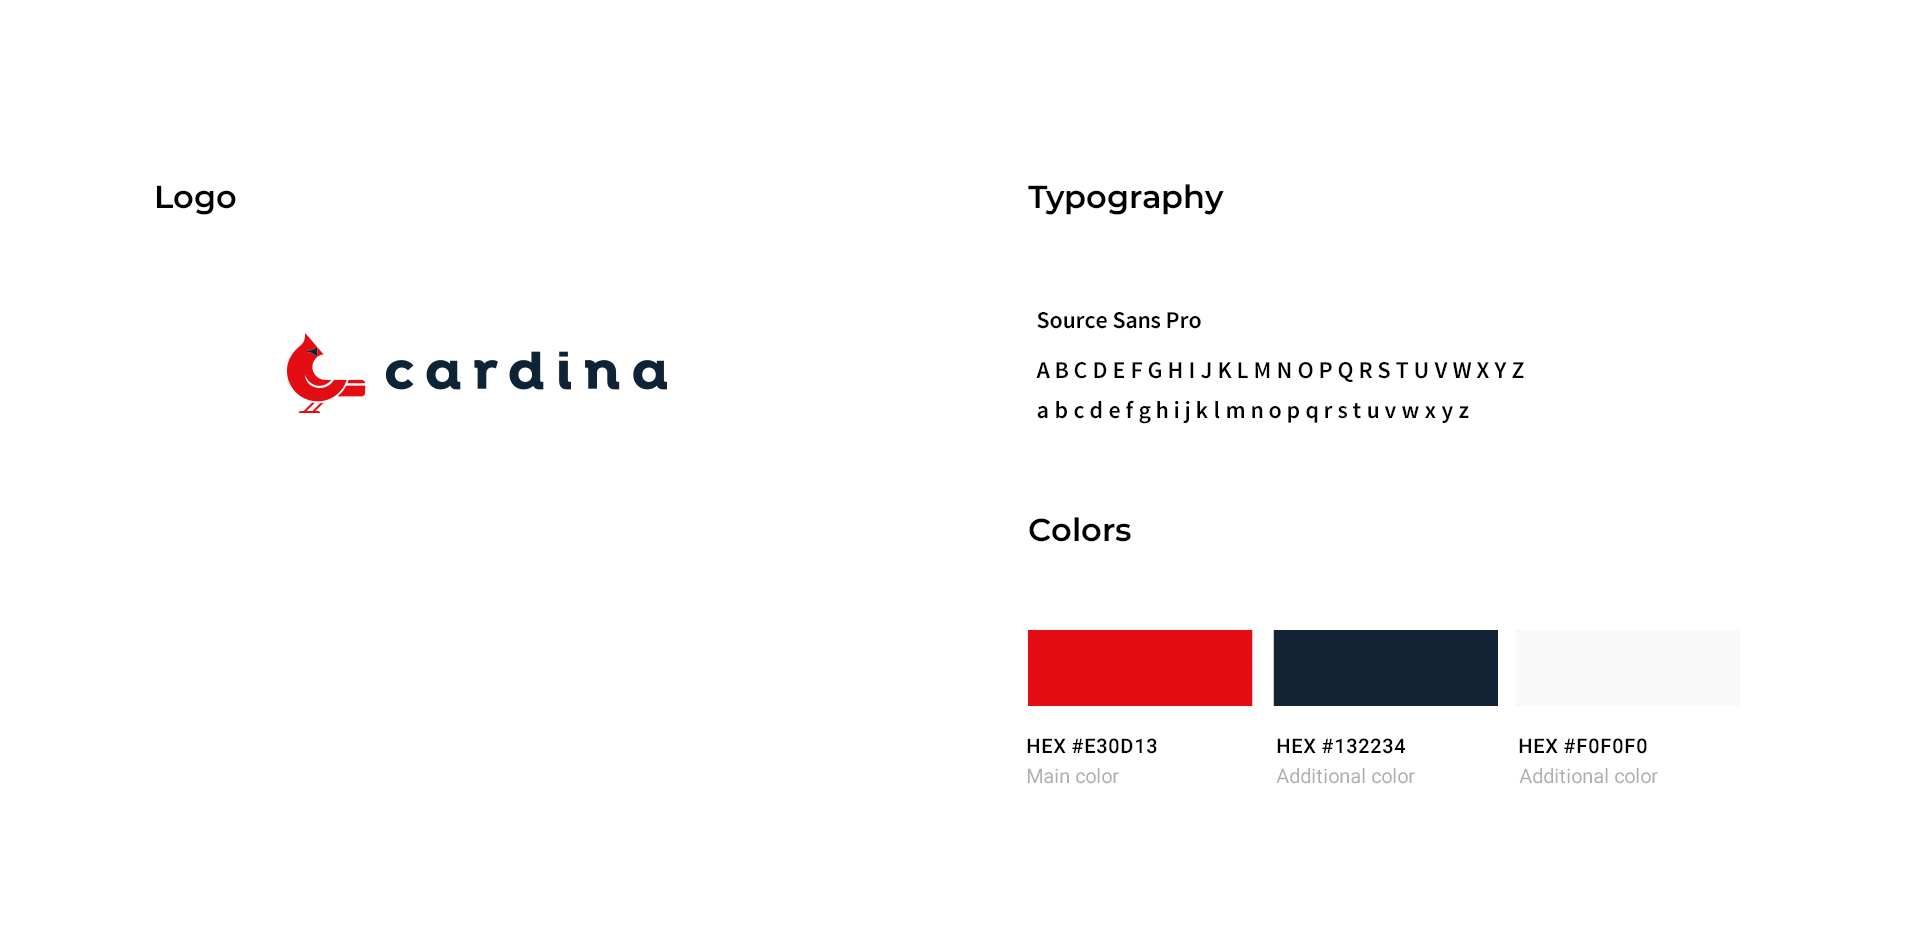 cardina, red logo of a bird with a black logotype on its right. Typography used: source sans pro, colors used: (main color: red) hex #E30D13, (additional color: navy blue) hex #132234, (additional color: white) hex #F0F0F0